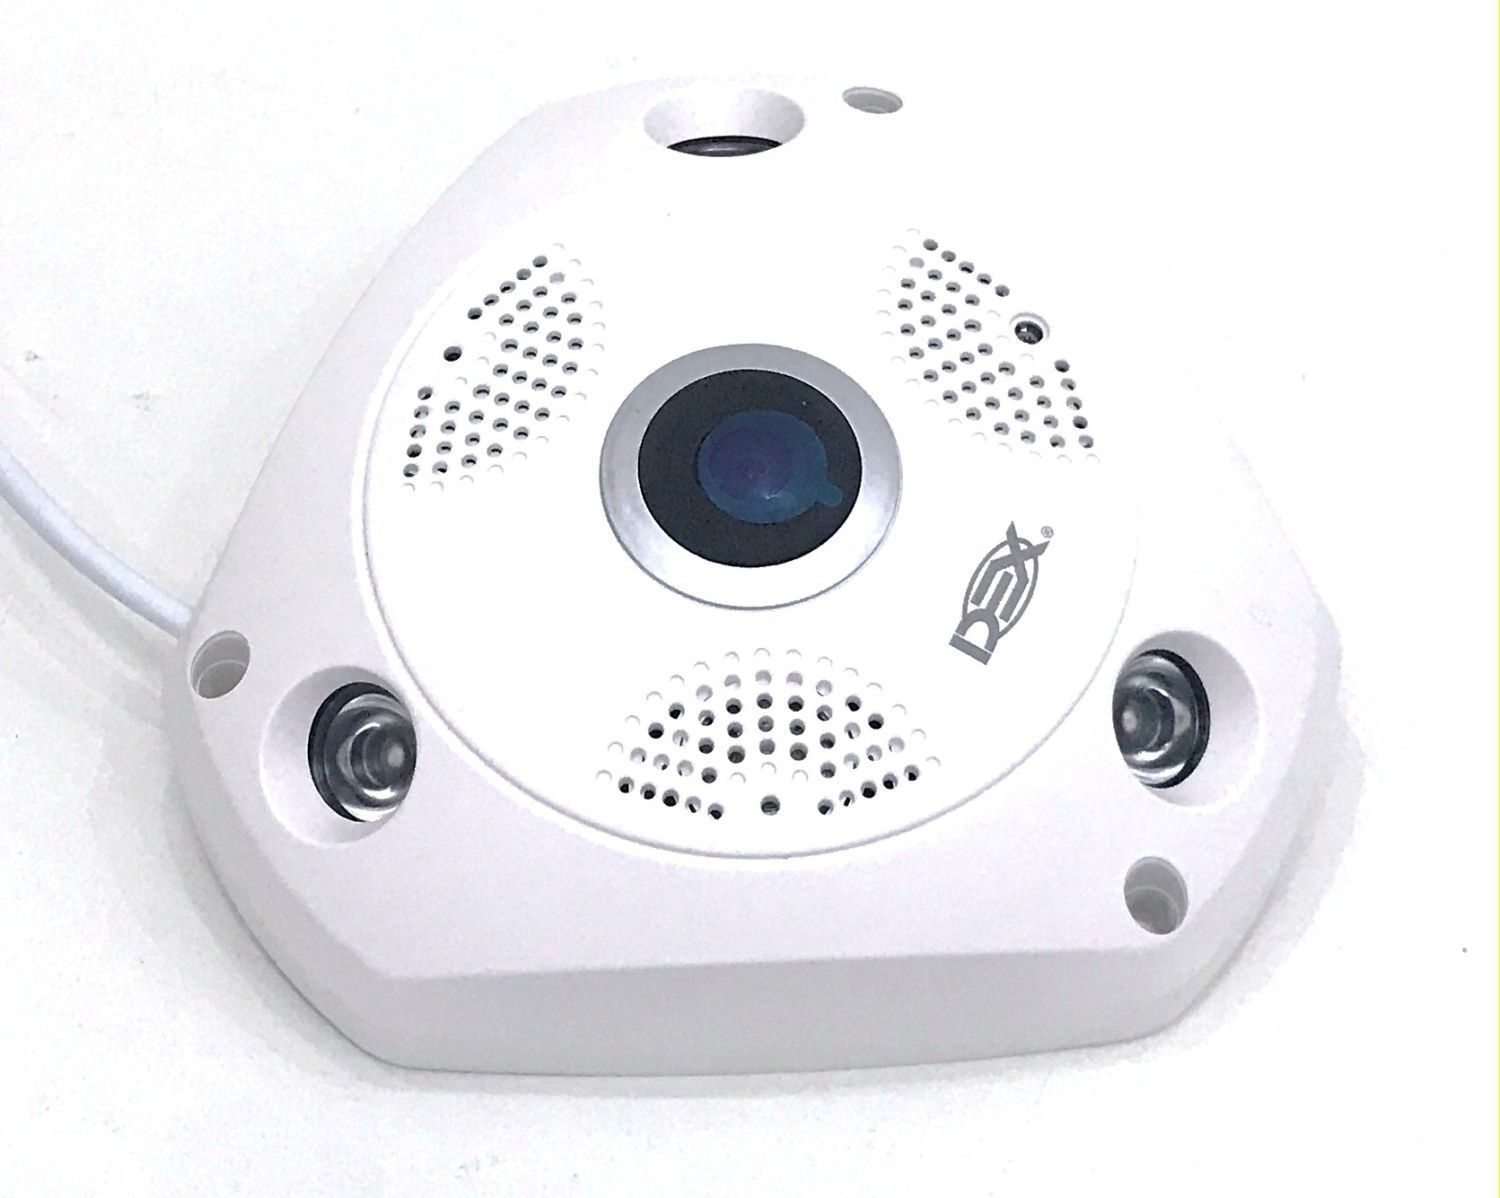 Camera De Seguranca Ip Hd Manoramica 360 Wifi 1.3mp Dx-w8 Dex